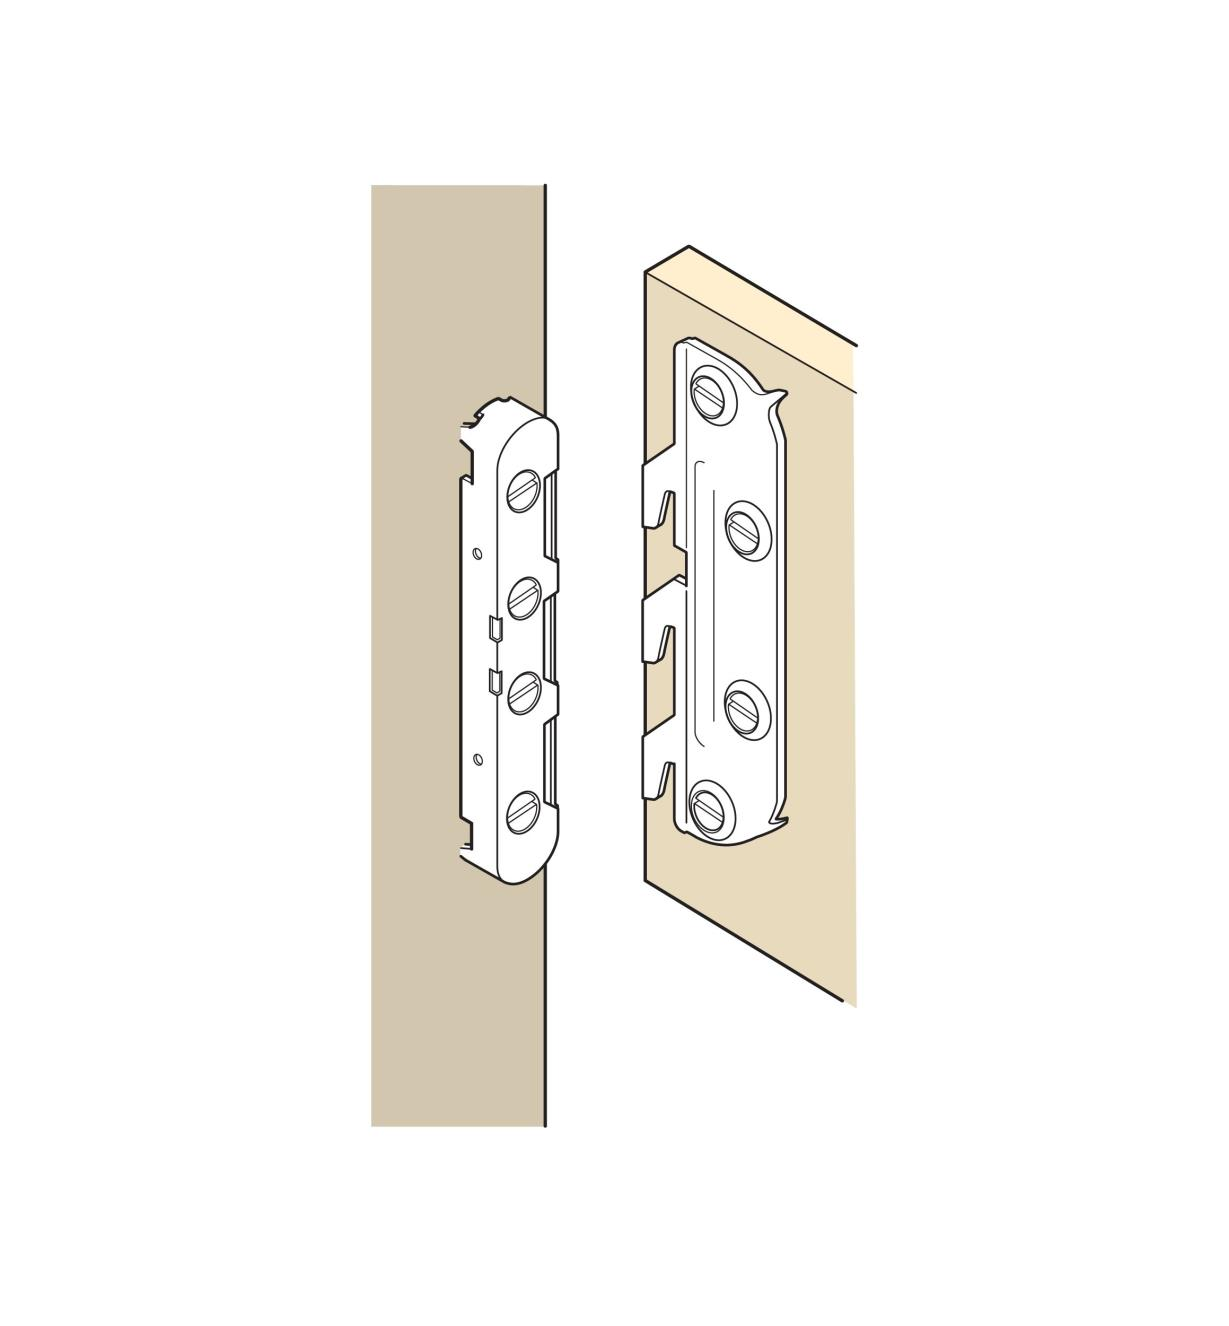 Illustration of Mortise-Free Bedlock joining a bed rail and headboard